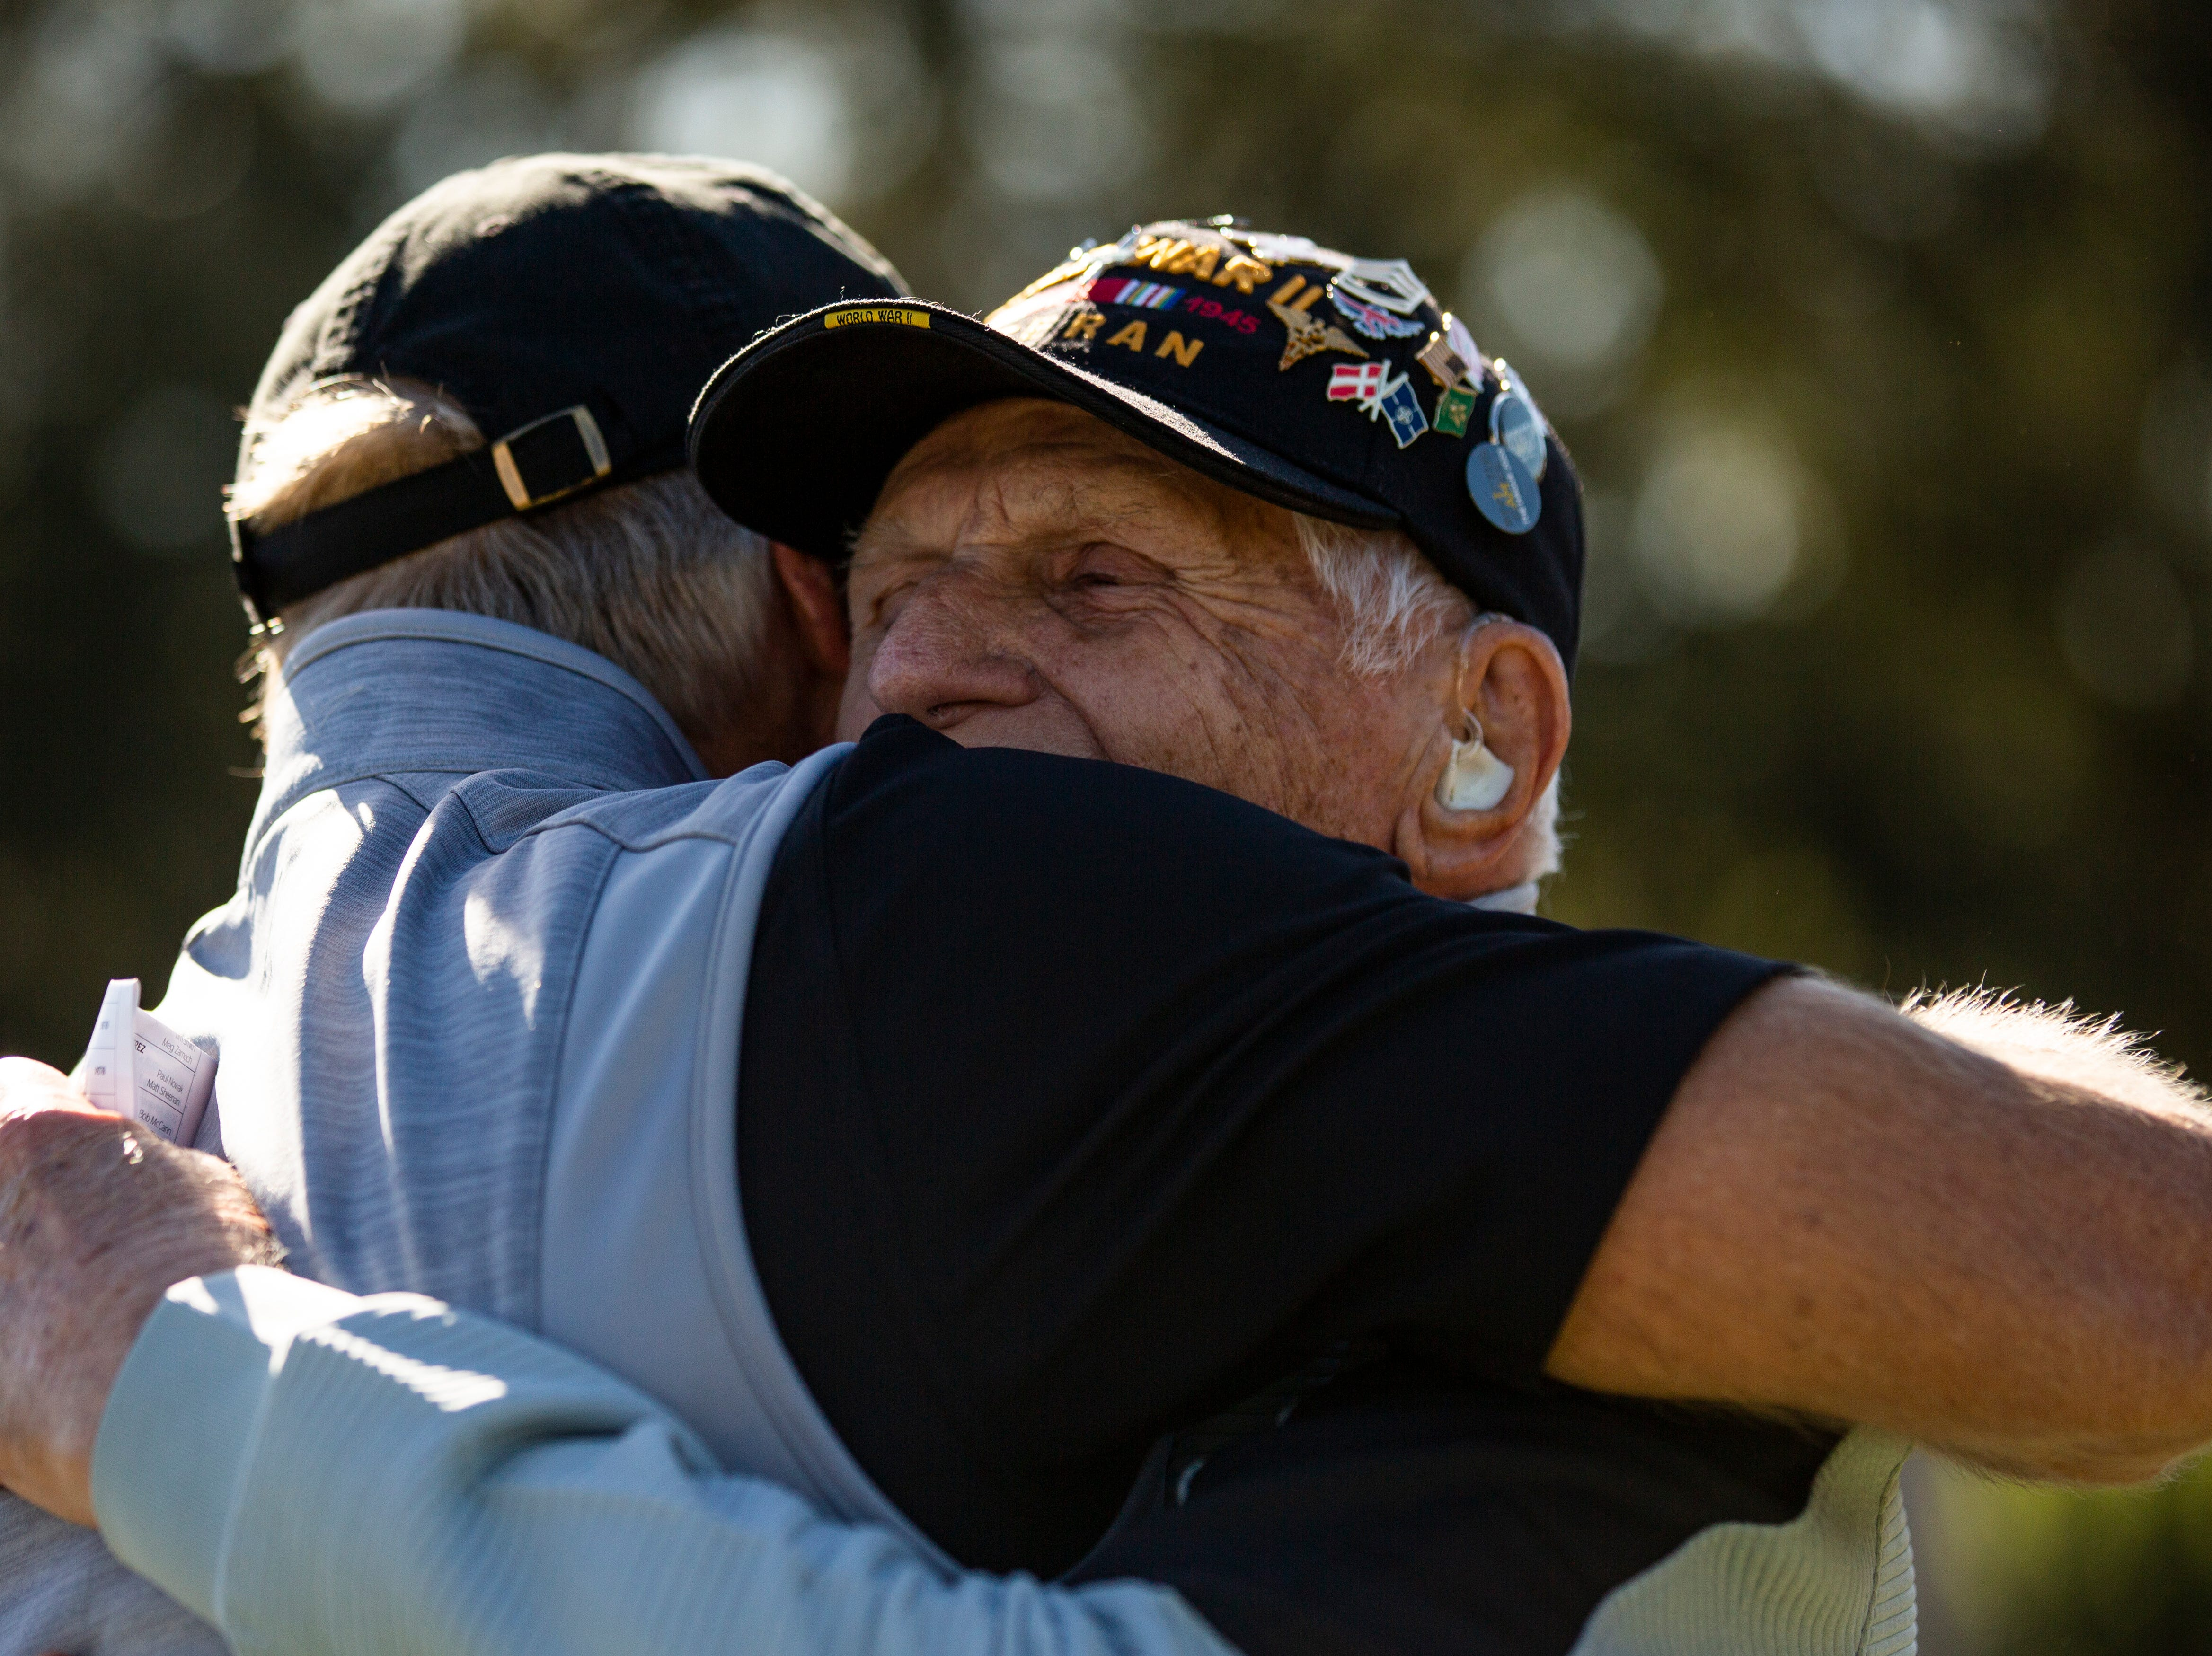 Greg Norman of Australia, shares a moment with 98-year-old Steve Melnikoff, one of the oldest surviving WWII veterans, before teeing off for the second pro-am round during the 30th annual QBE Shootout Pro - Amateur round two, on Thursday, Dec. 6, 2018, at Tiburón Golf Club in Naples.